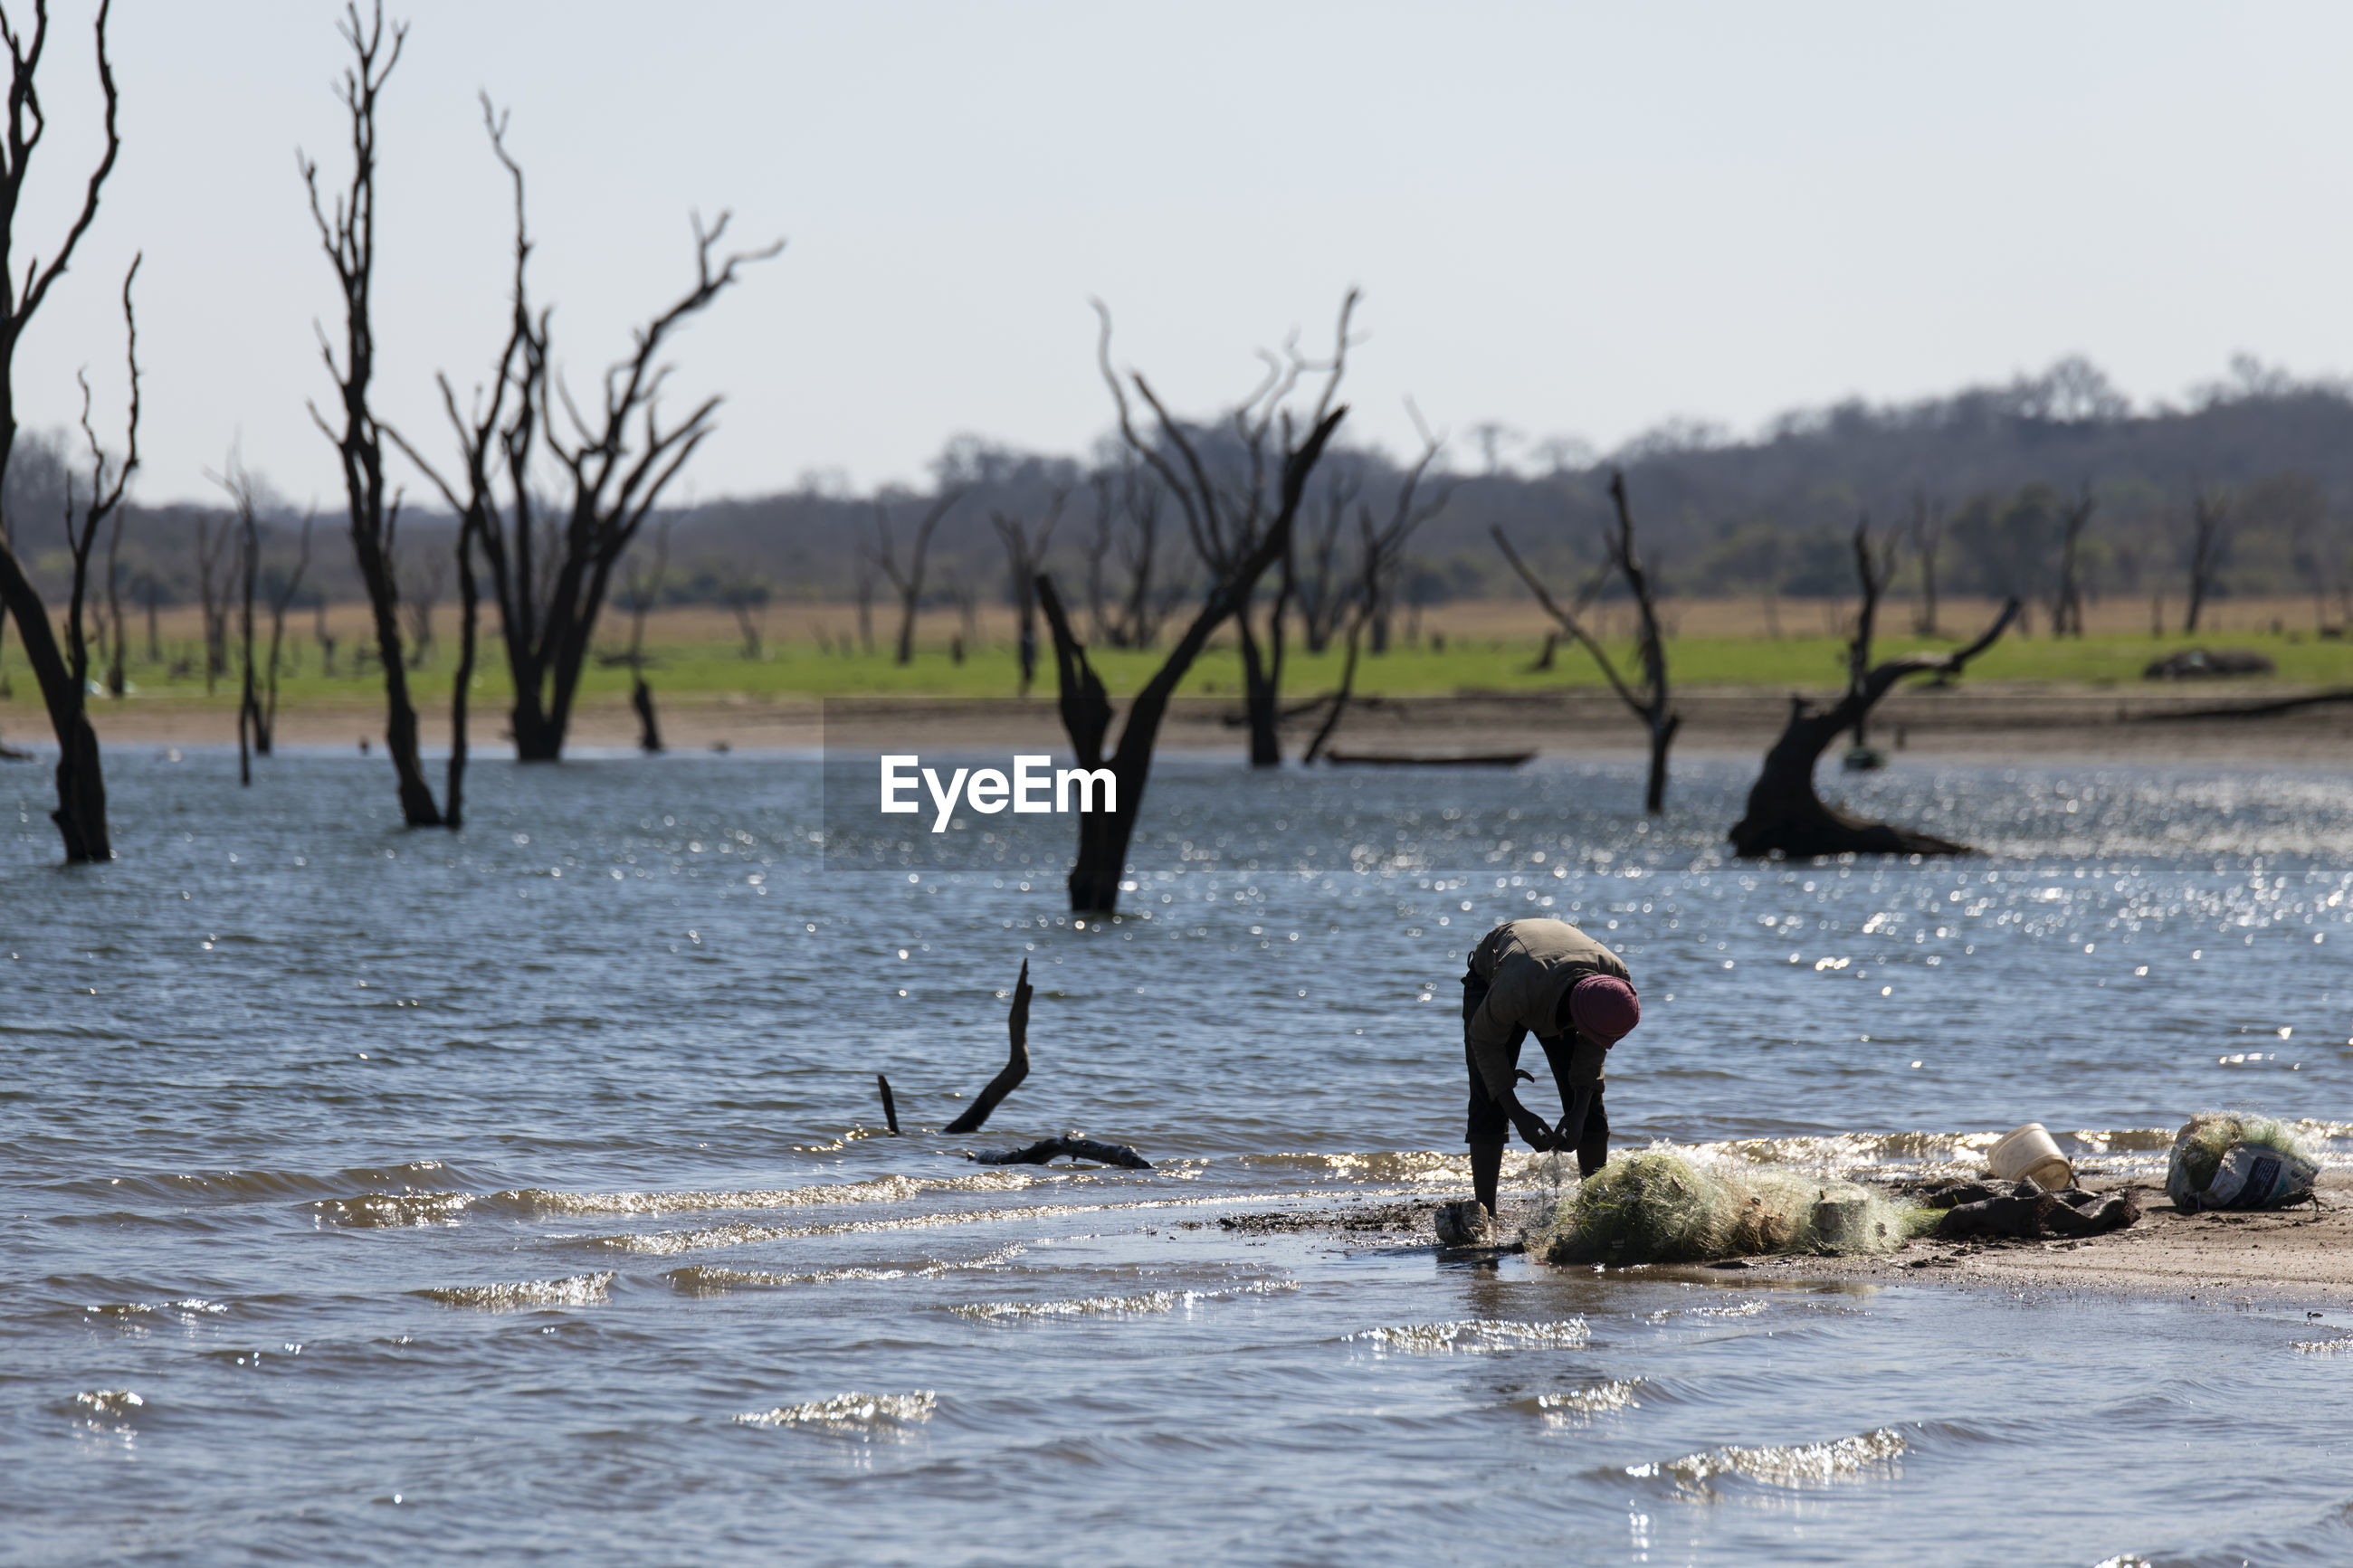 Kafue national park in zambia, africa